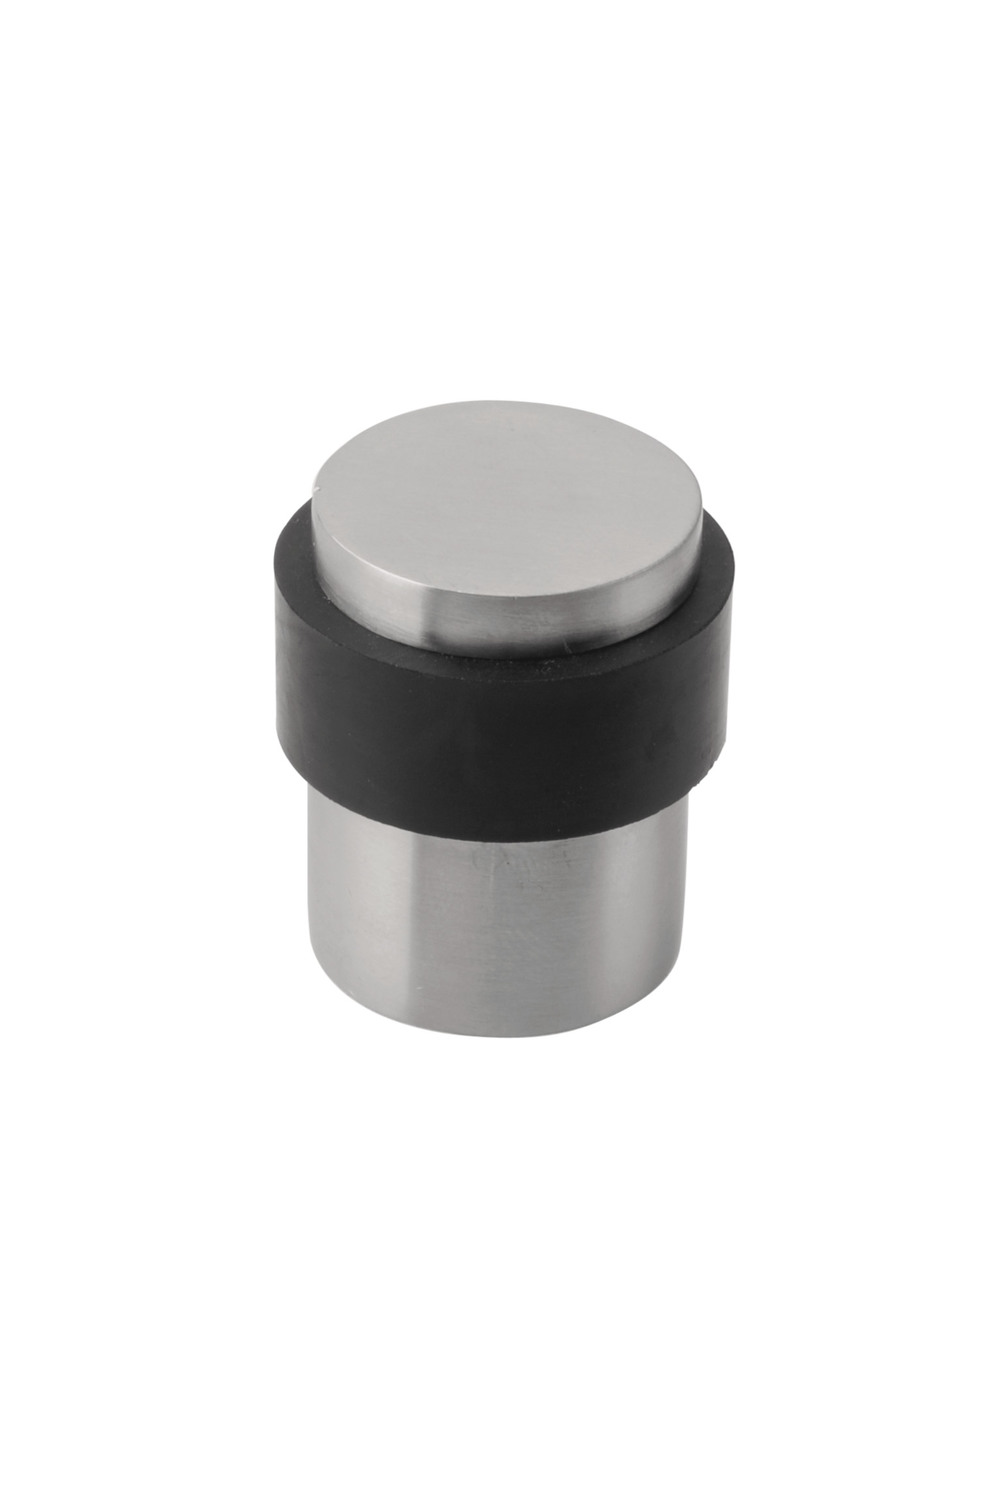 LB10-door-stop-satin-stainless-steel.jpg